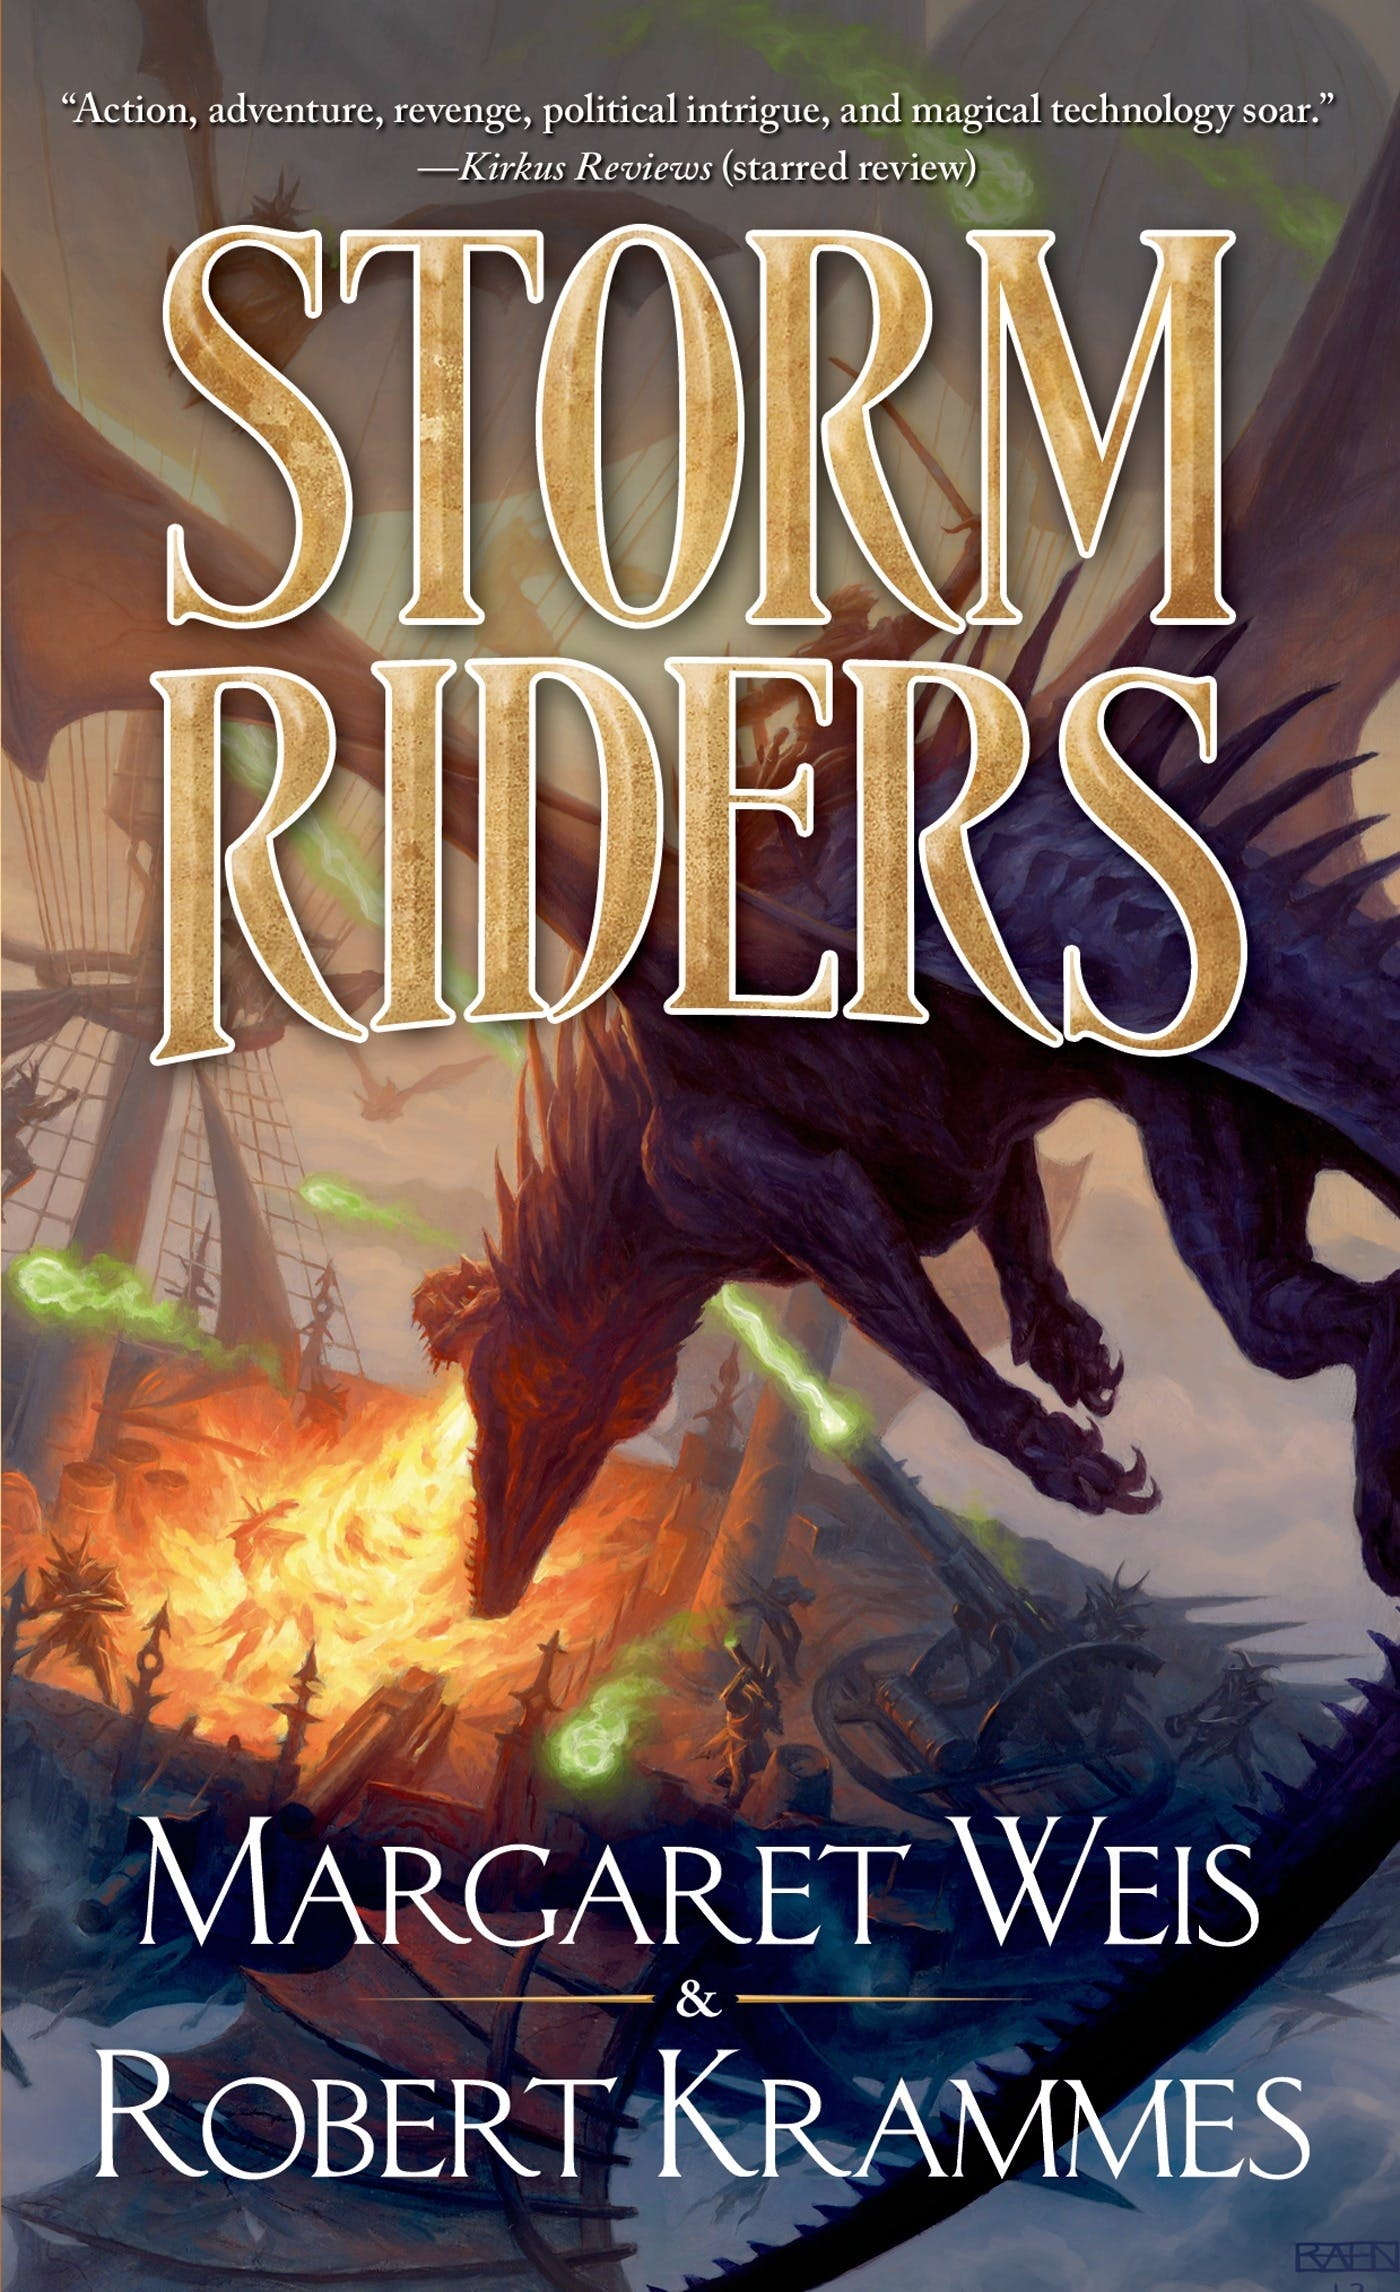 Image of Storm Riders